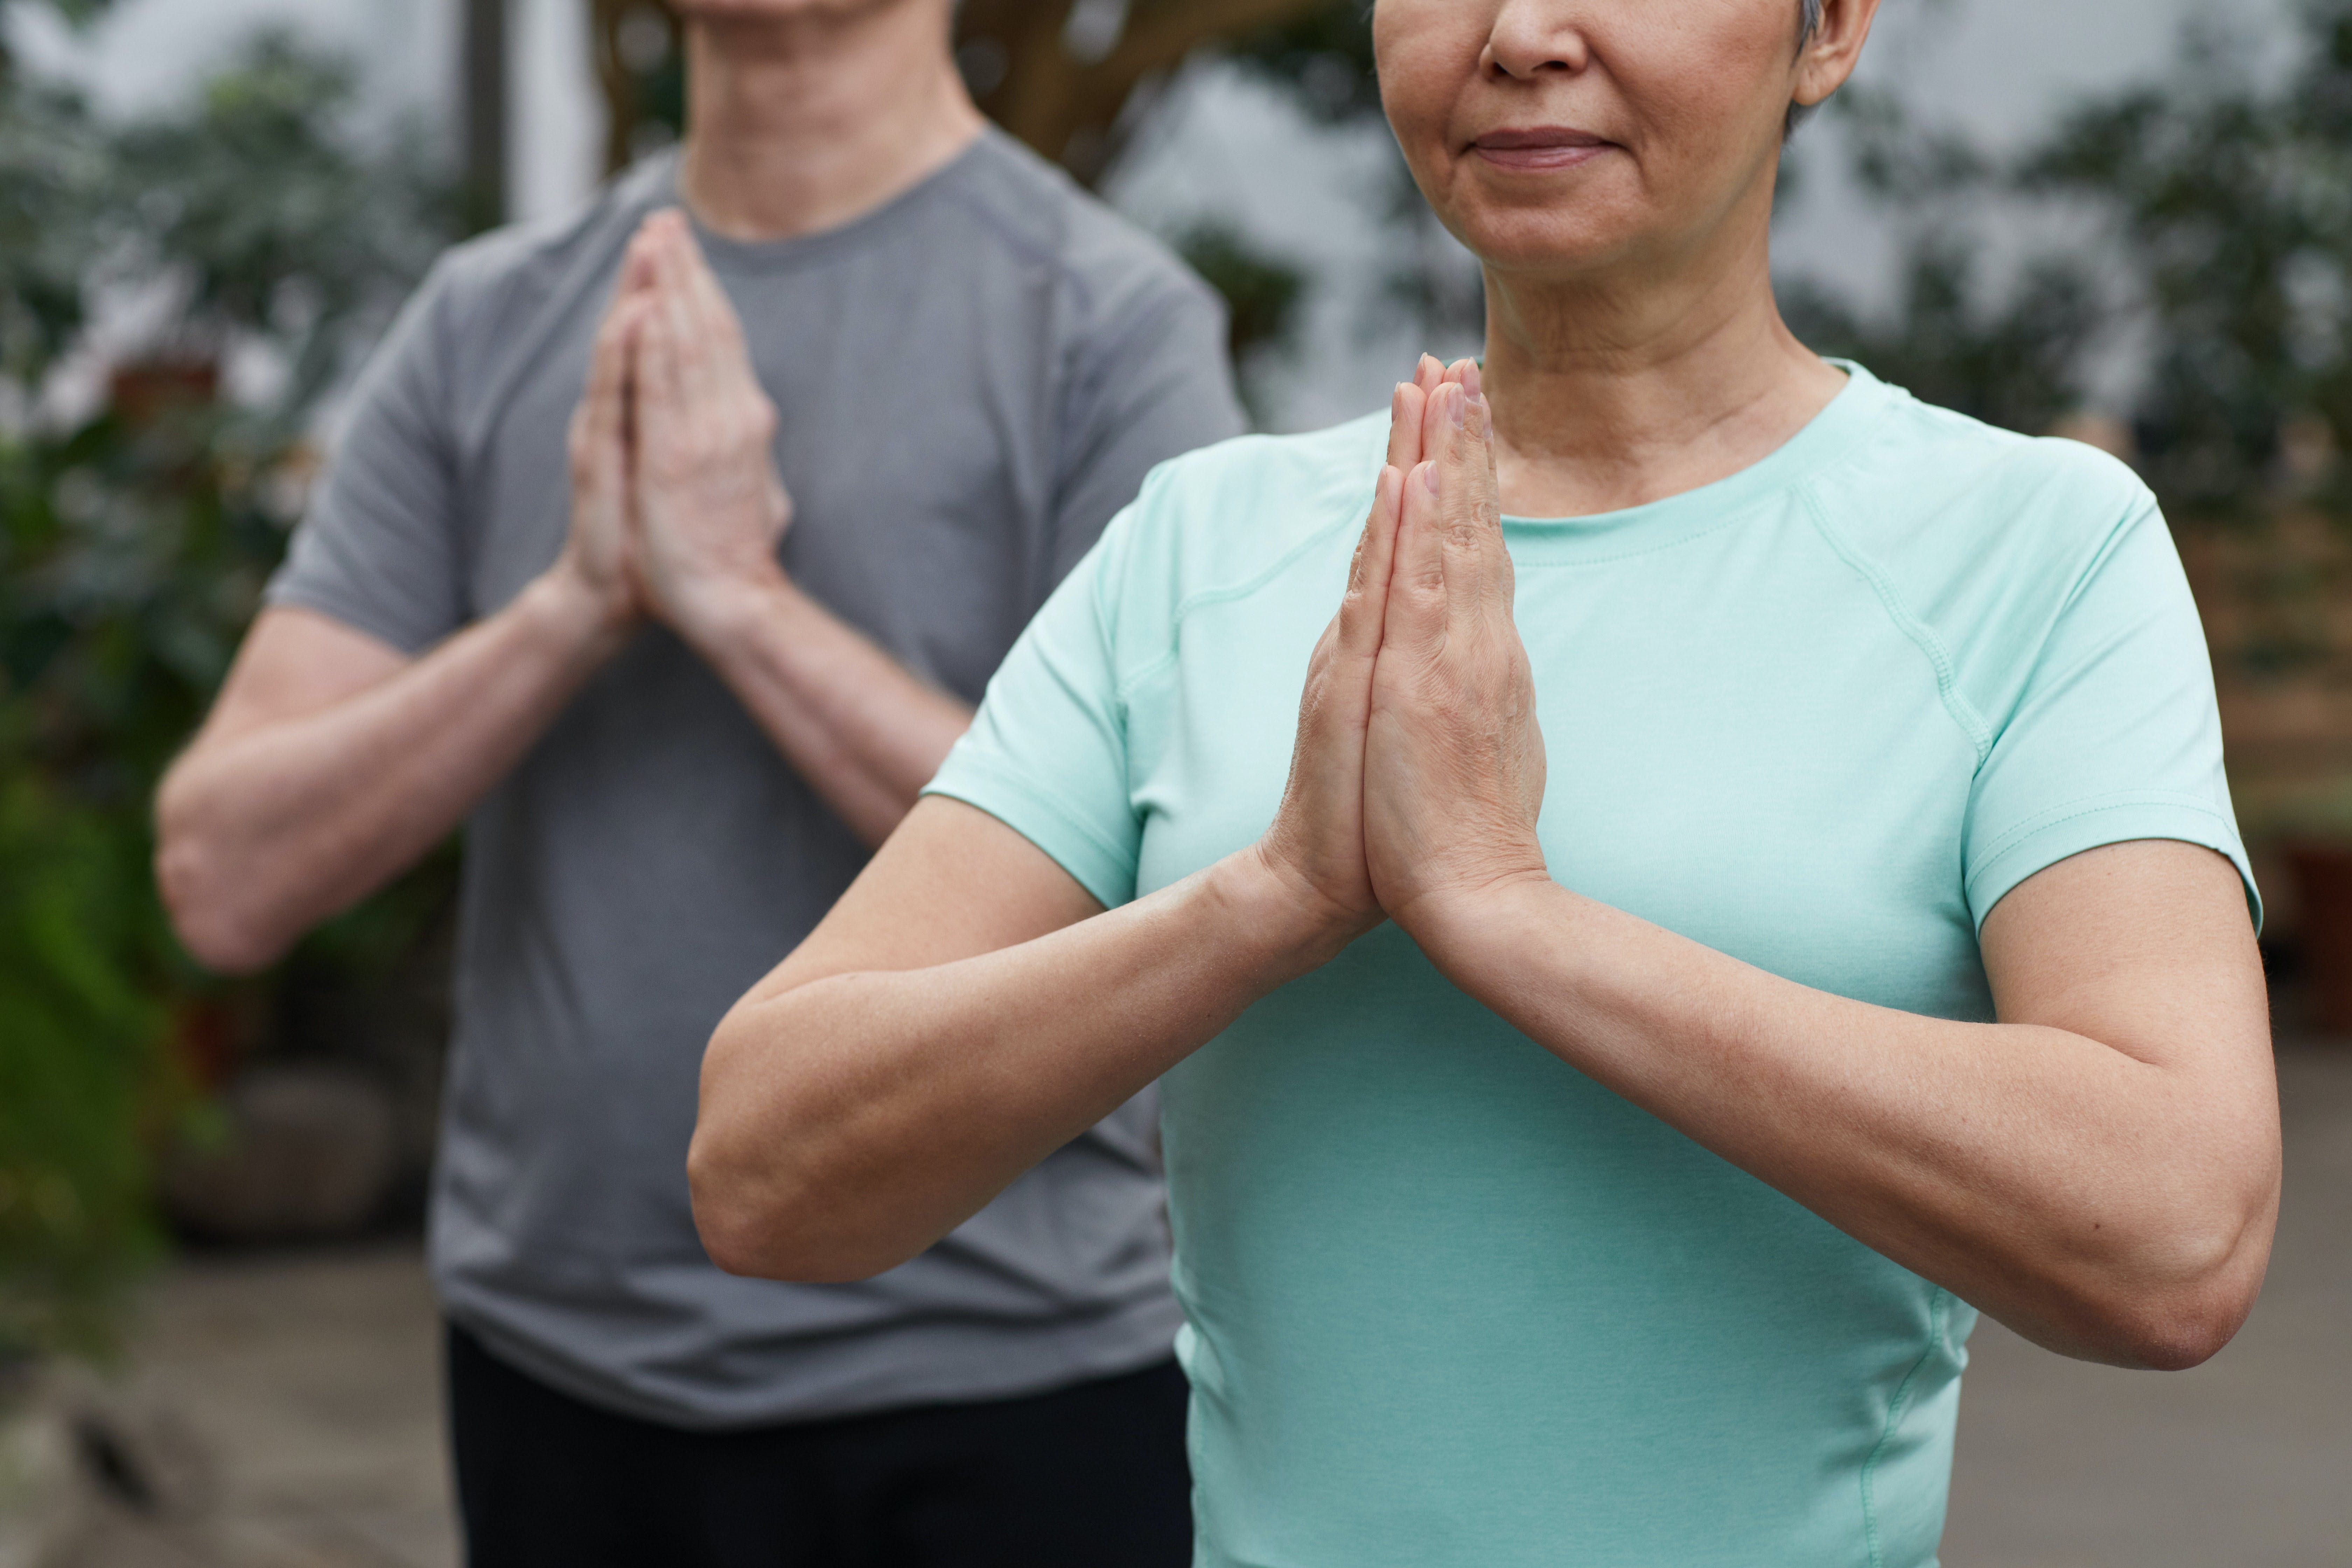 A mand and woman stand in the namaste yoga pose.